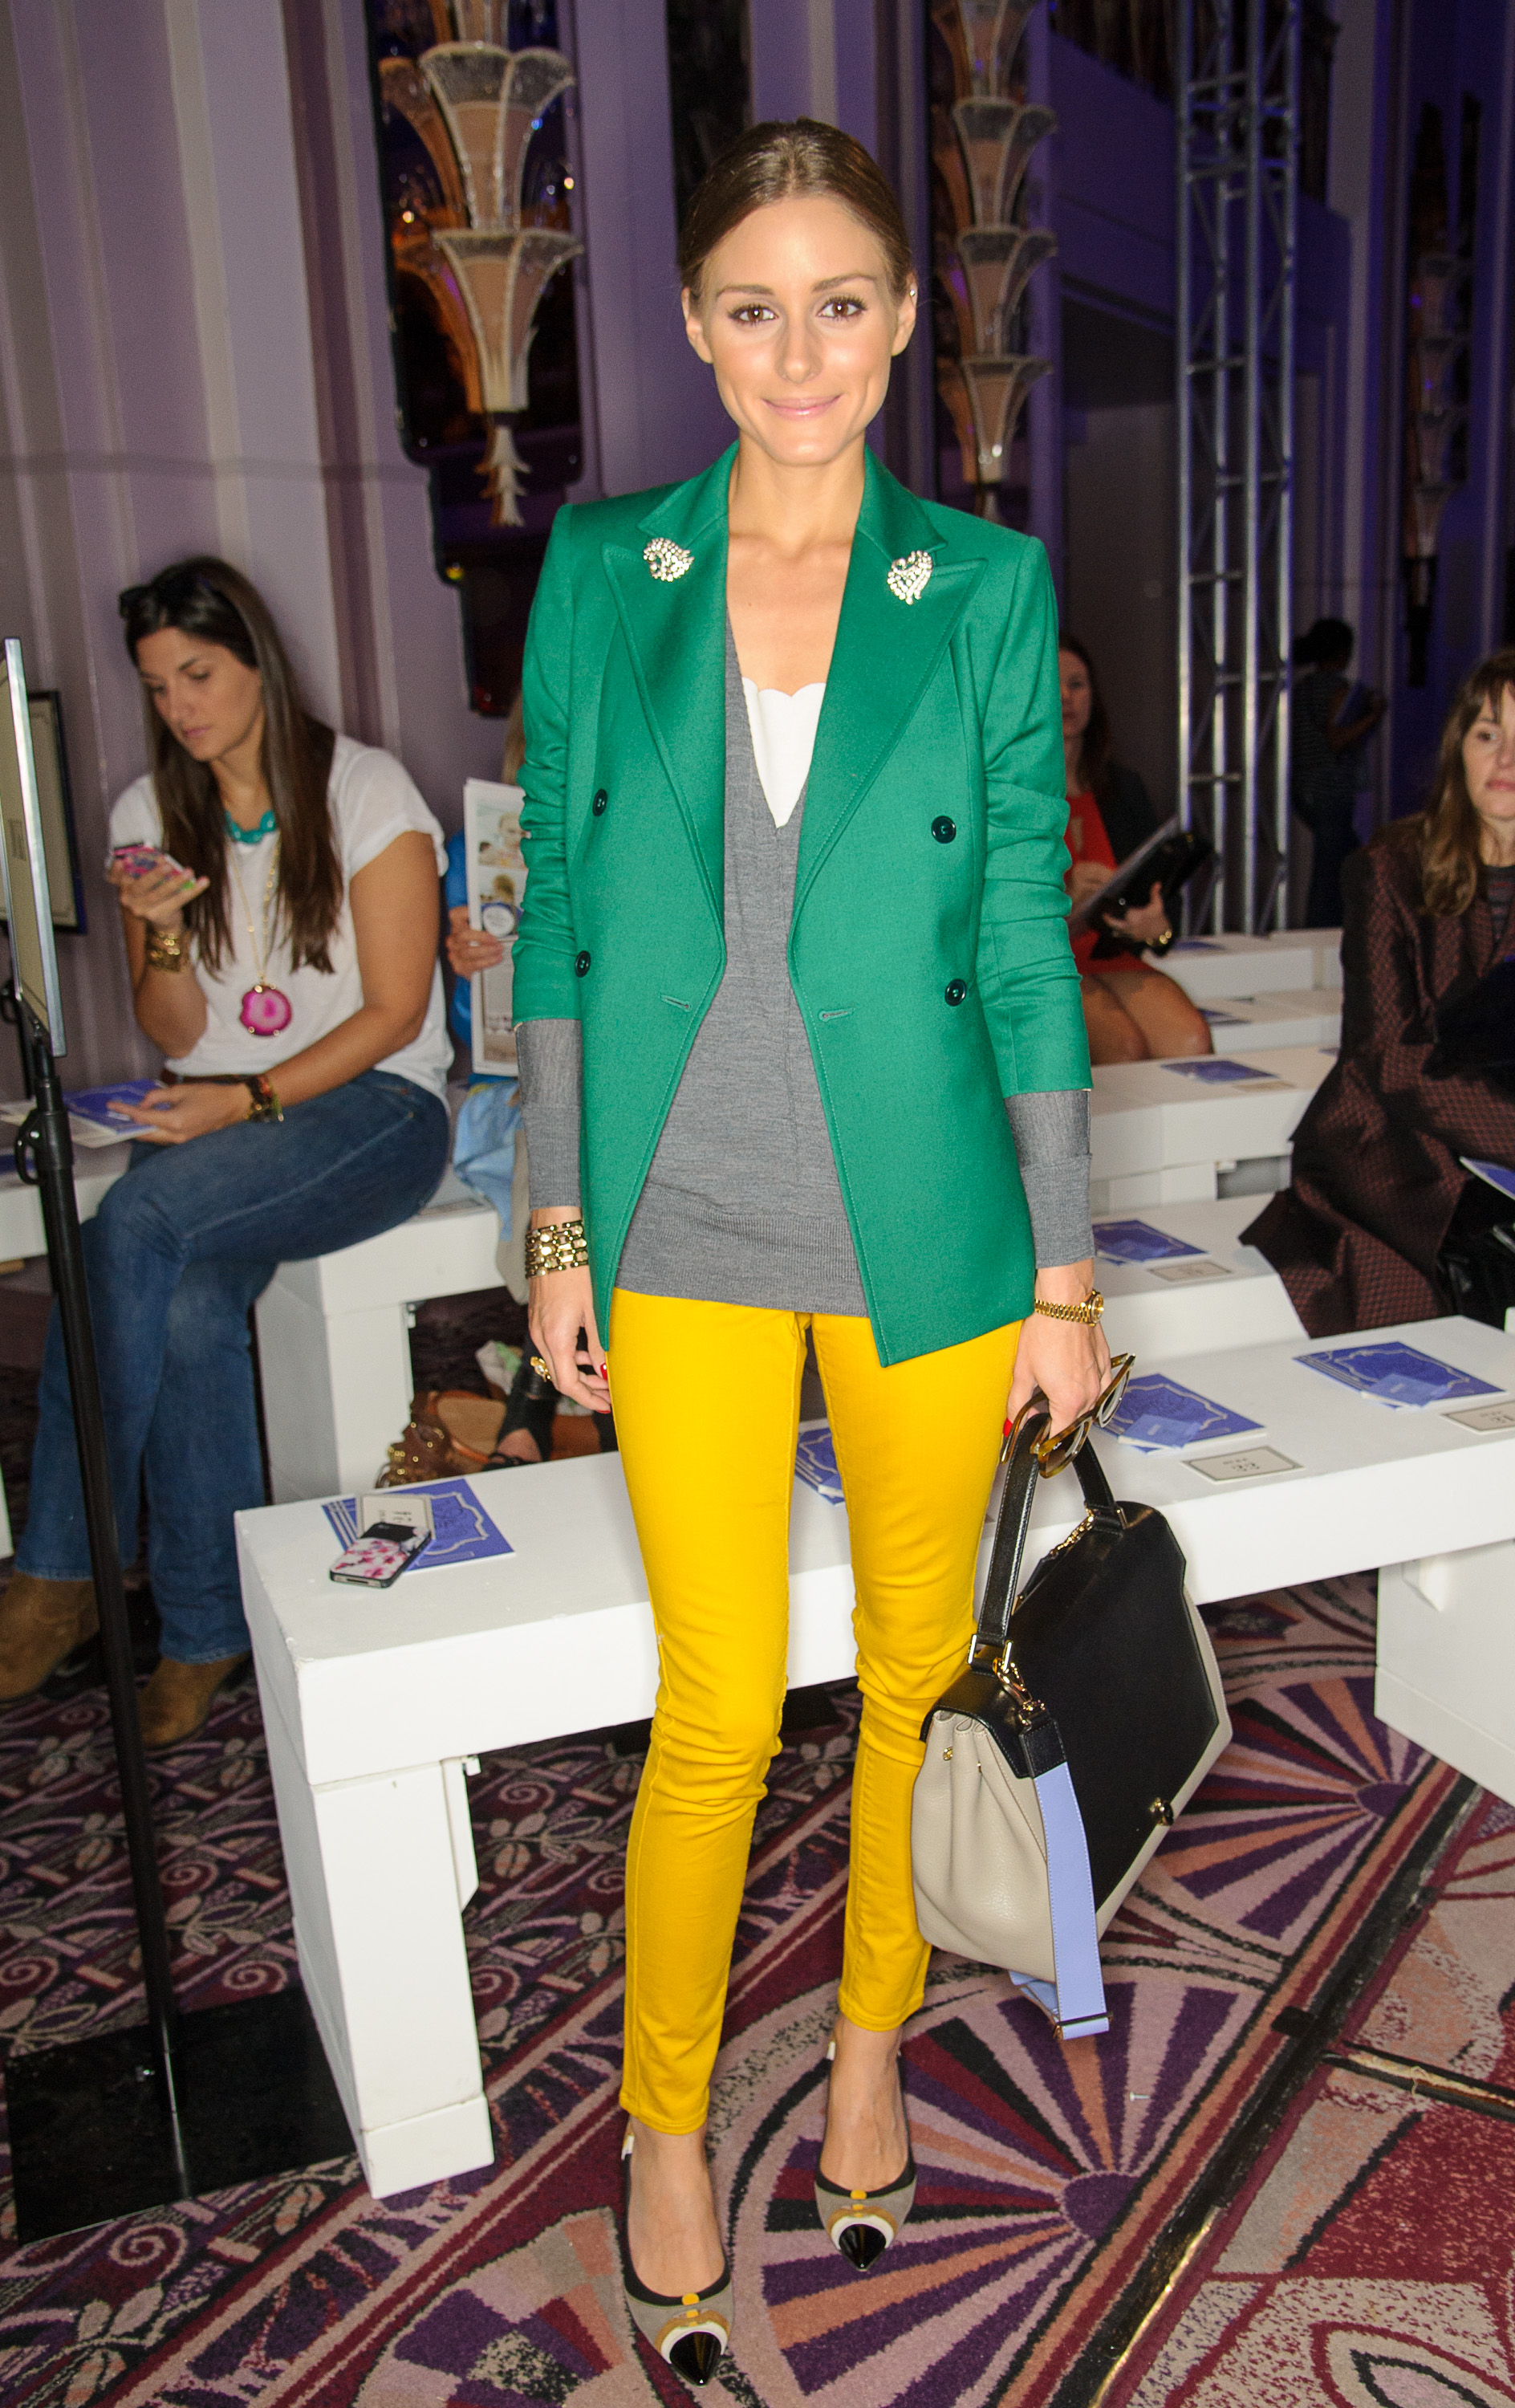 Olivia took colorblocking to chic heights in the front row of Anya Hindmarch's show at LFW. Adding a brilliant double-breasted blazer to standout yellow skinny jeans, Olivia made a bold statement but stuck to classic silhouettes.